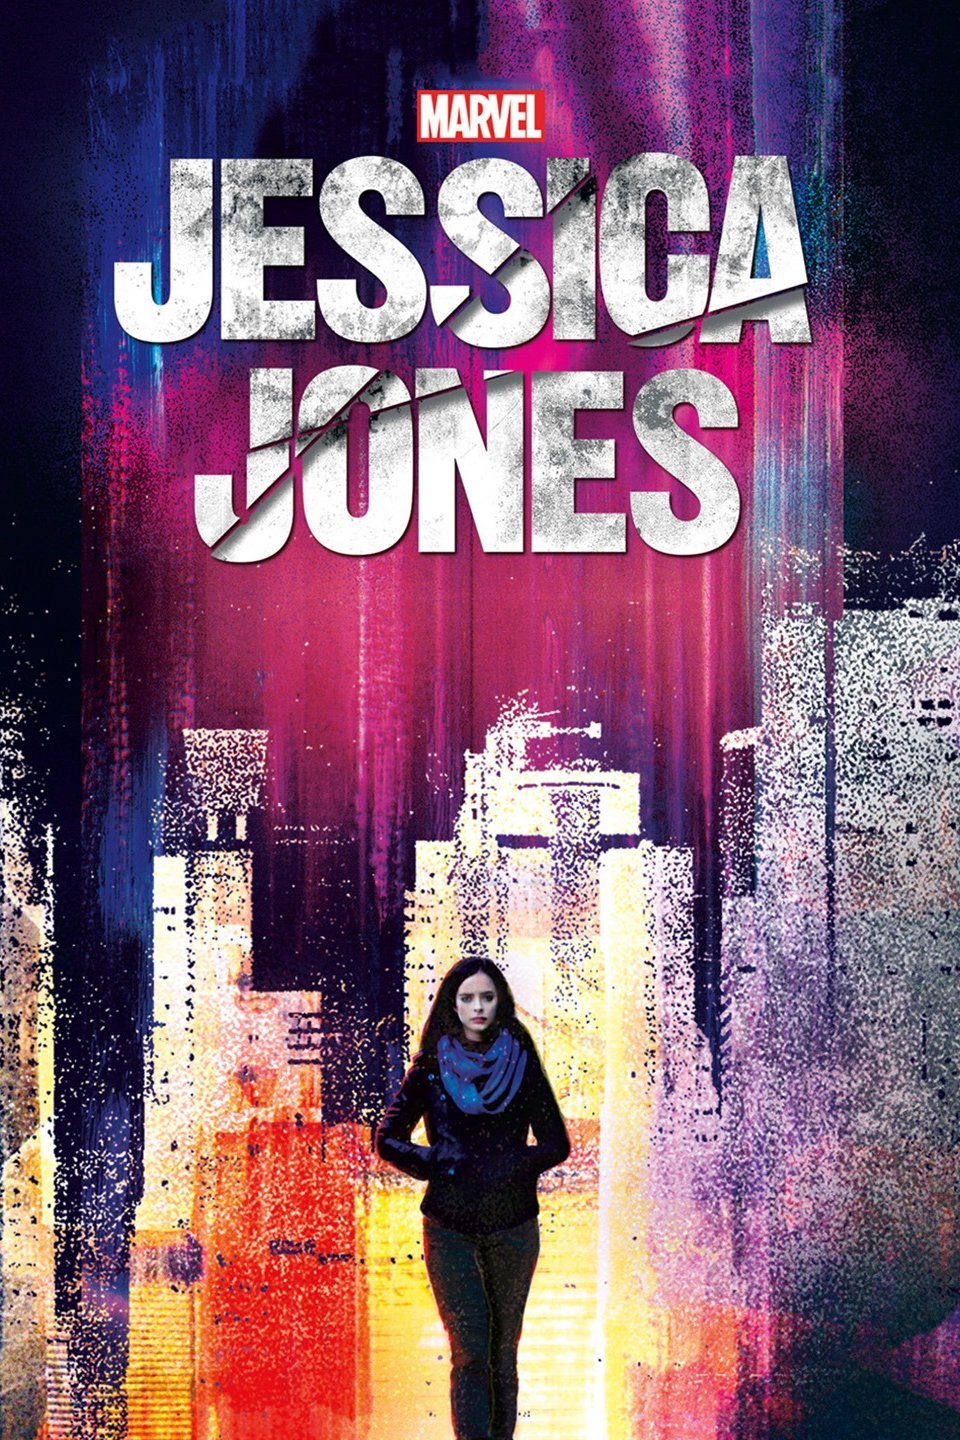 Jessica Jones Download Season 1 Complete 720p WEBRip Micromkv